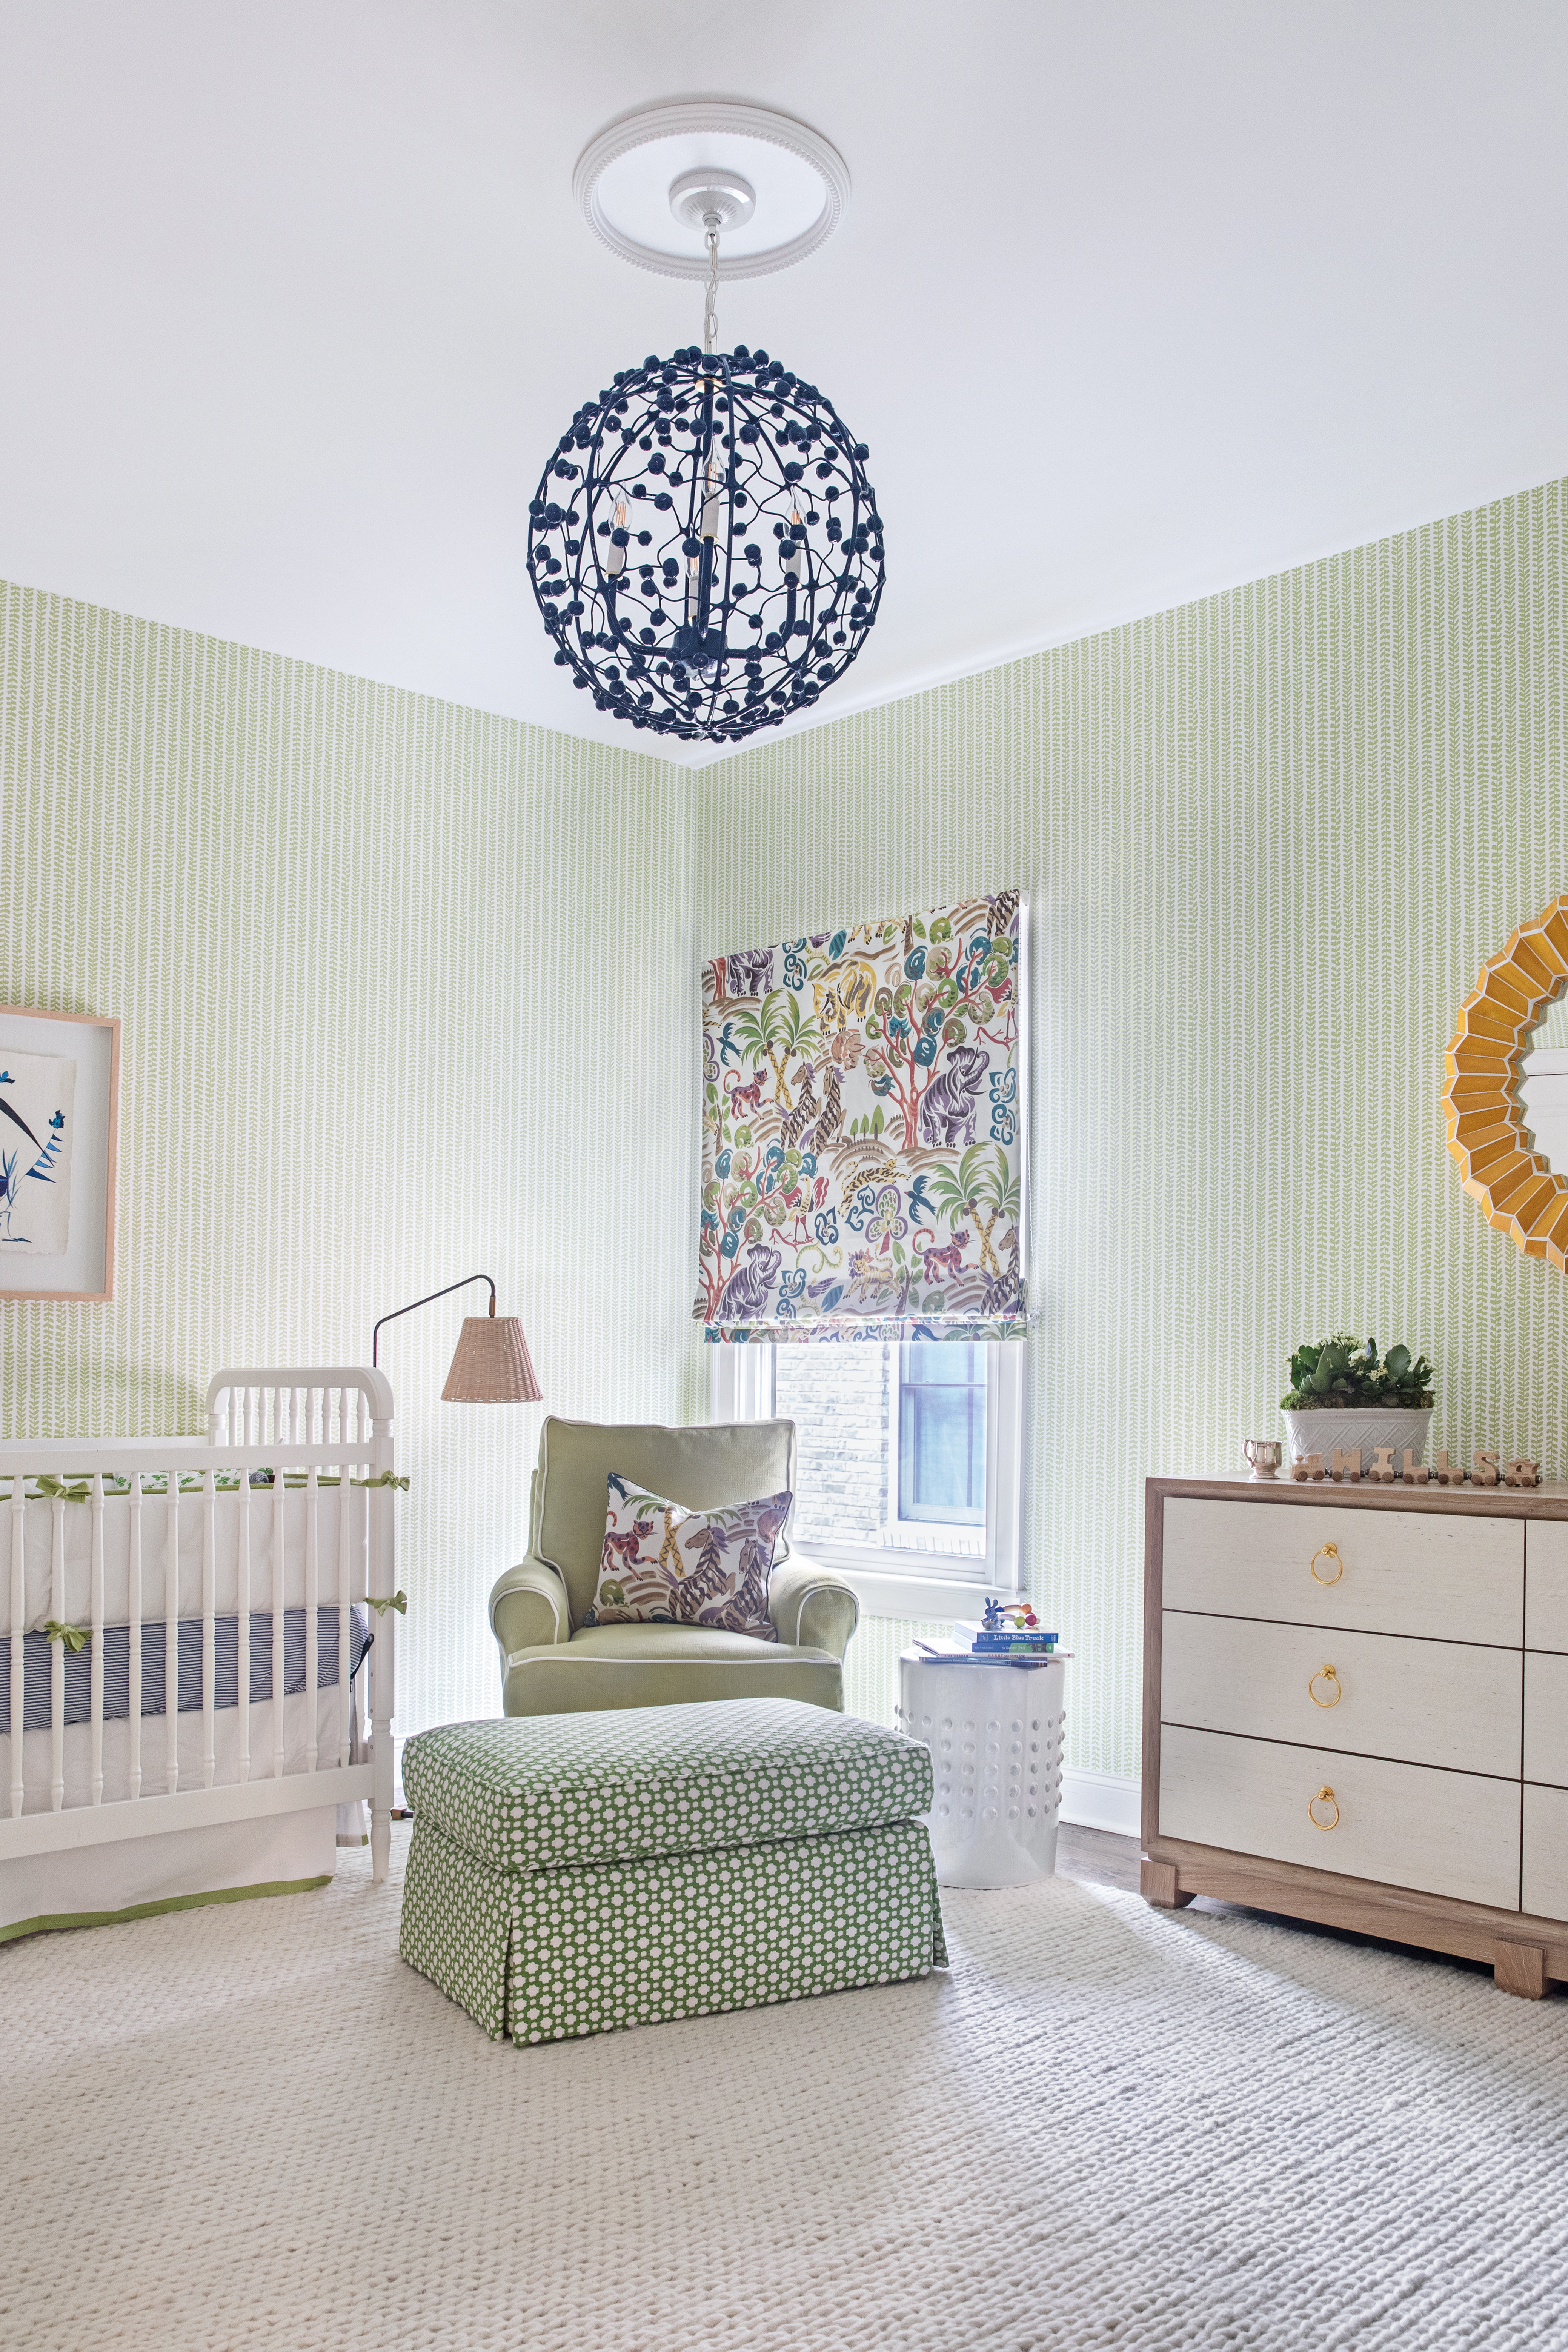 Will's Nursery Image 3